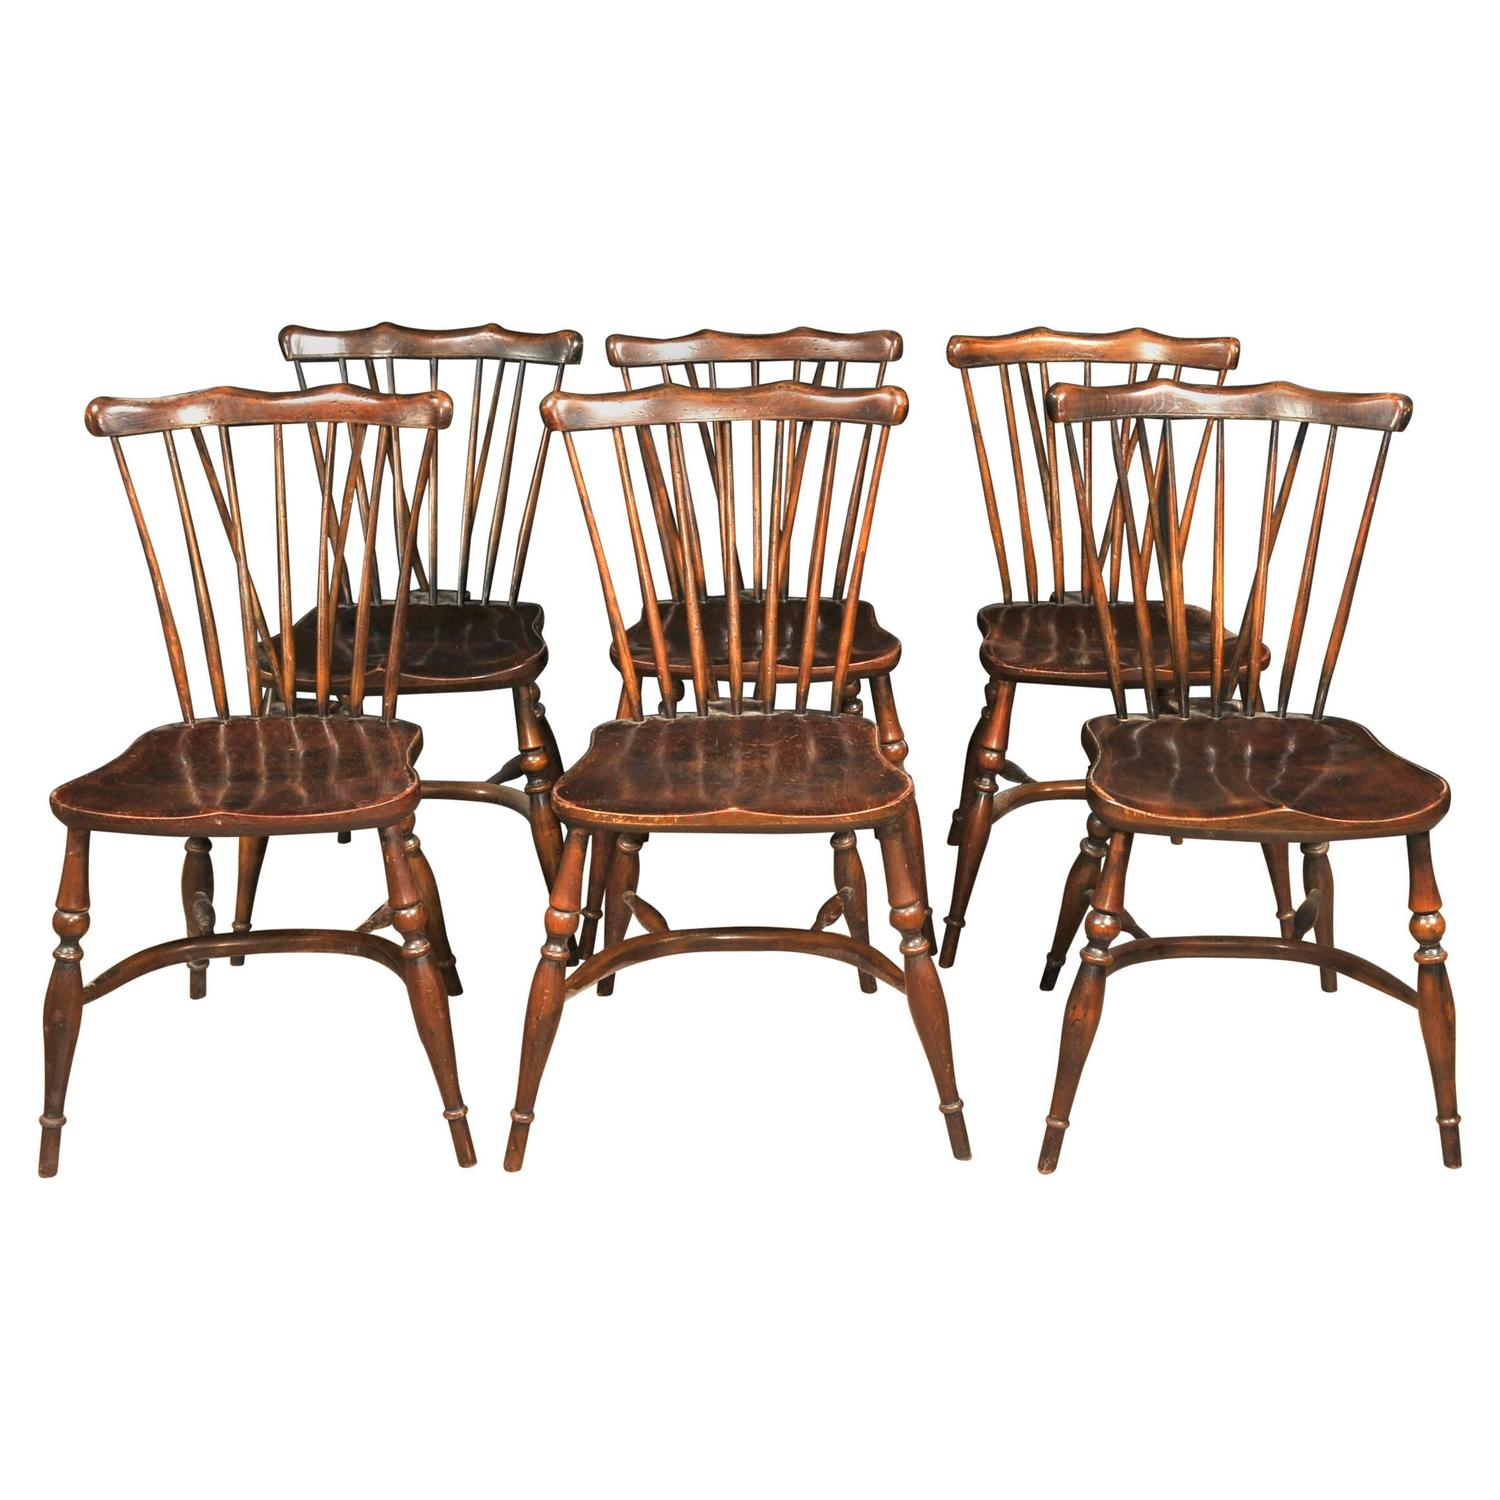 Kitchen Chairs For Sale: Set Of Eight Antique Oak Windsor Chairs 1920 Kitchen